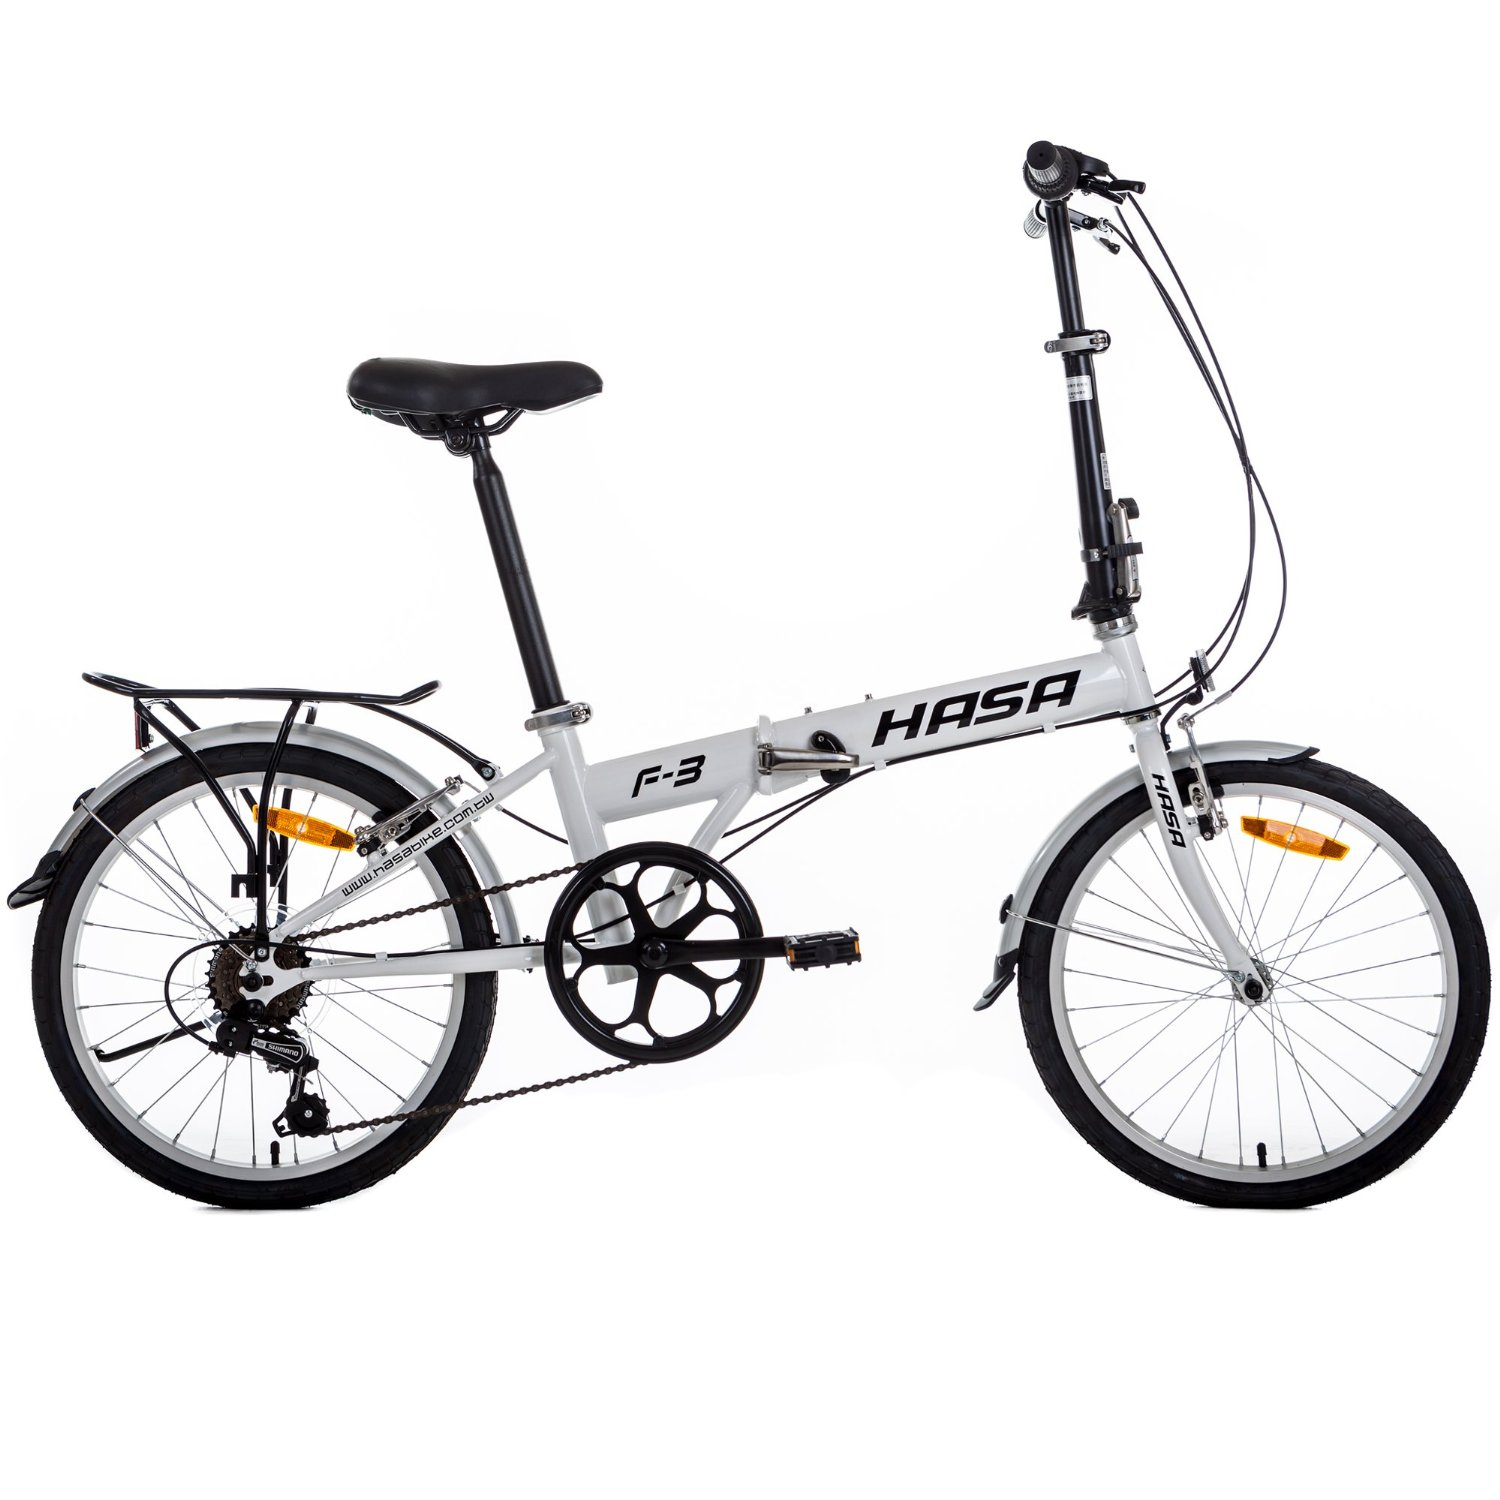 HASA F3 6 Speed Folding Bike